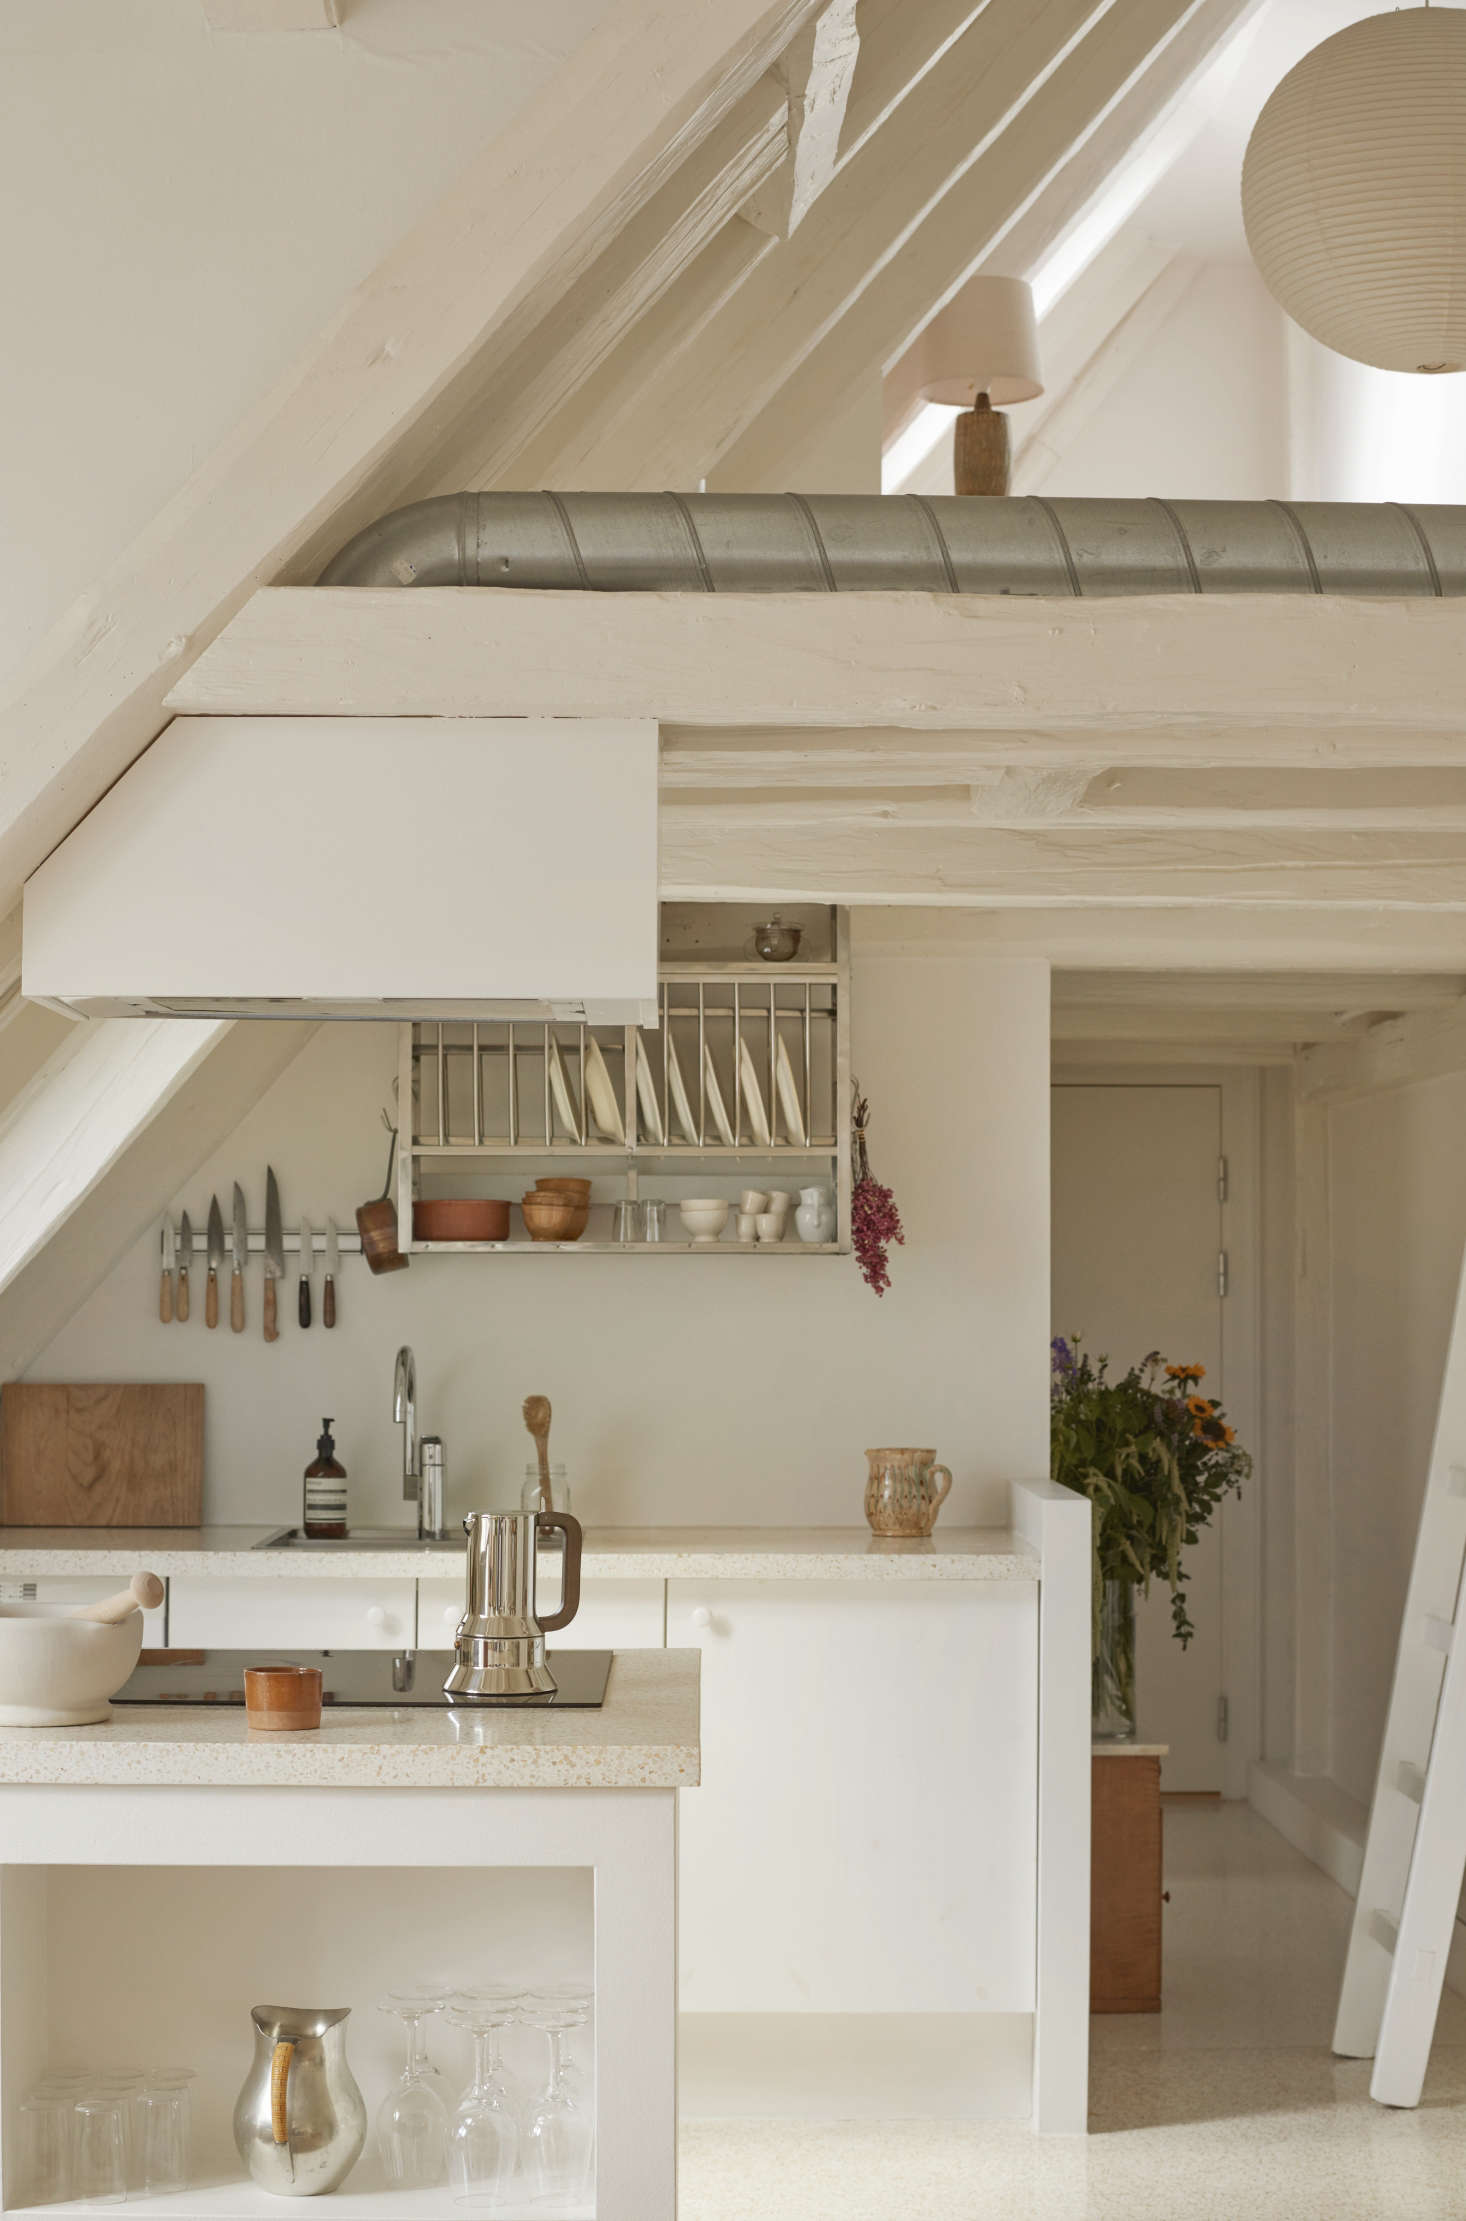 The all-white kitchen sits beneath a lofted home office on the top floor of the historic building. Photograph courtesy of Katrine Rohrberg from Danish Heritage: A Copenhagen Townhouse Renovated by Hand.